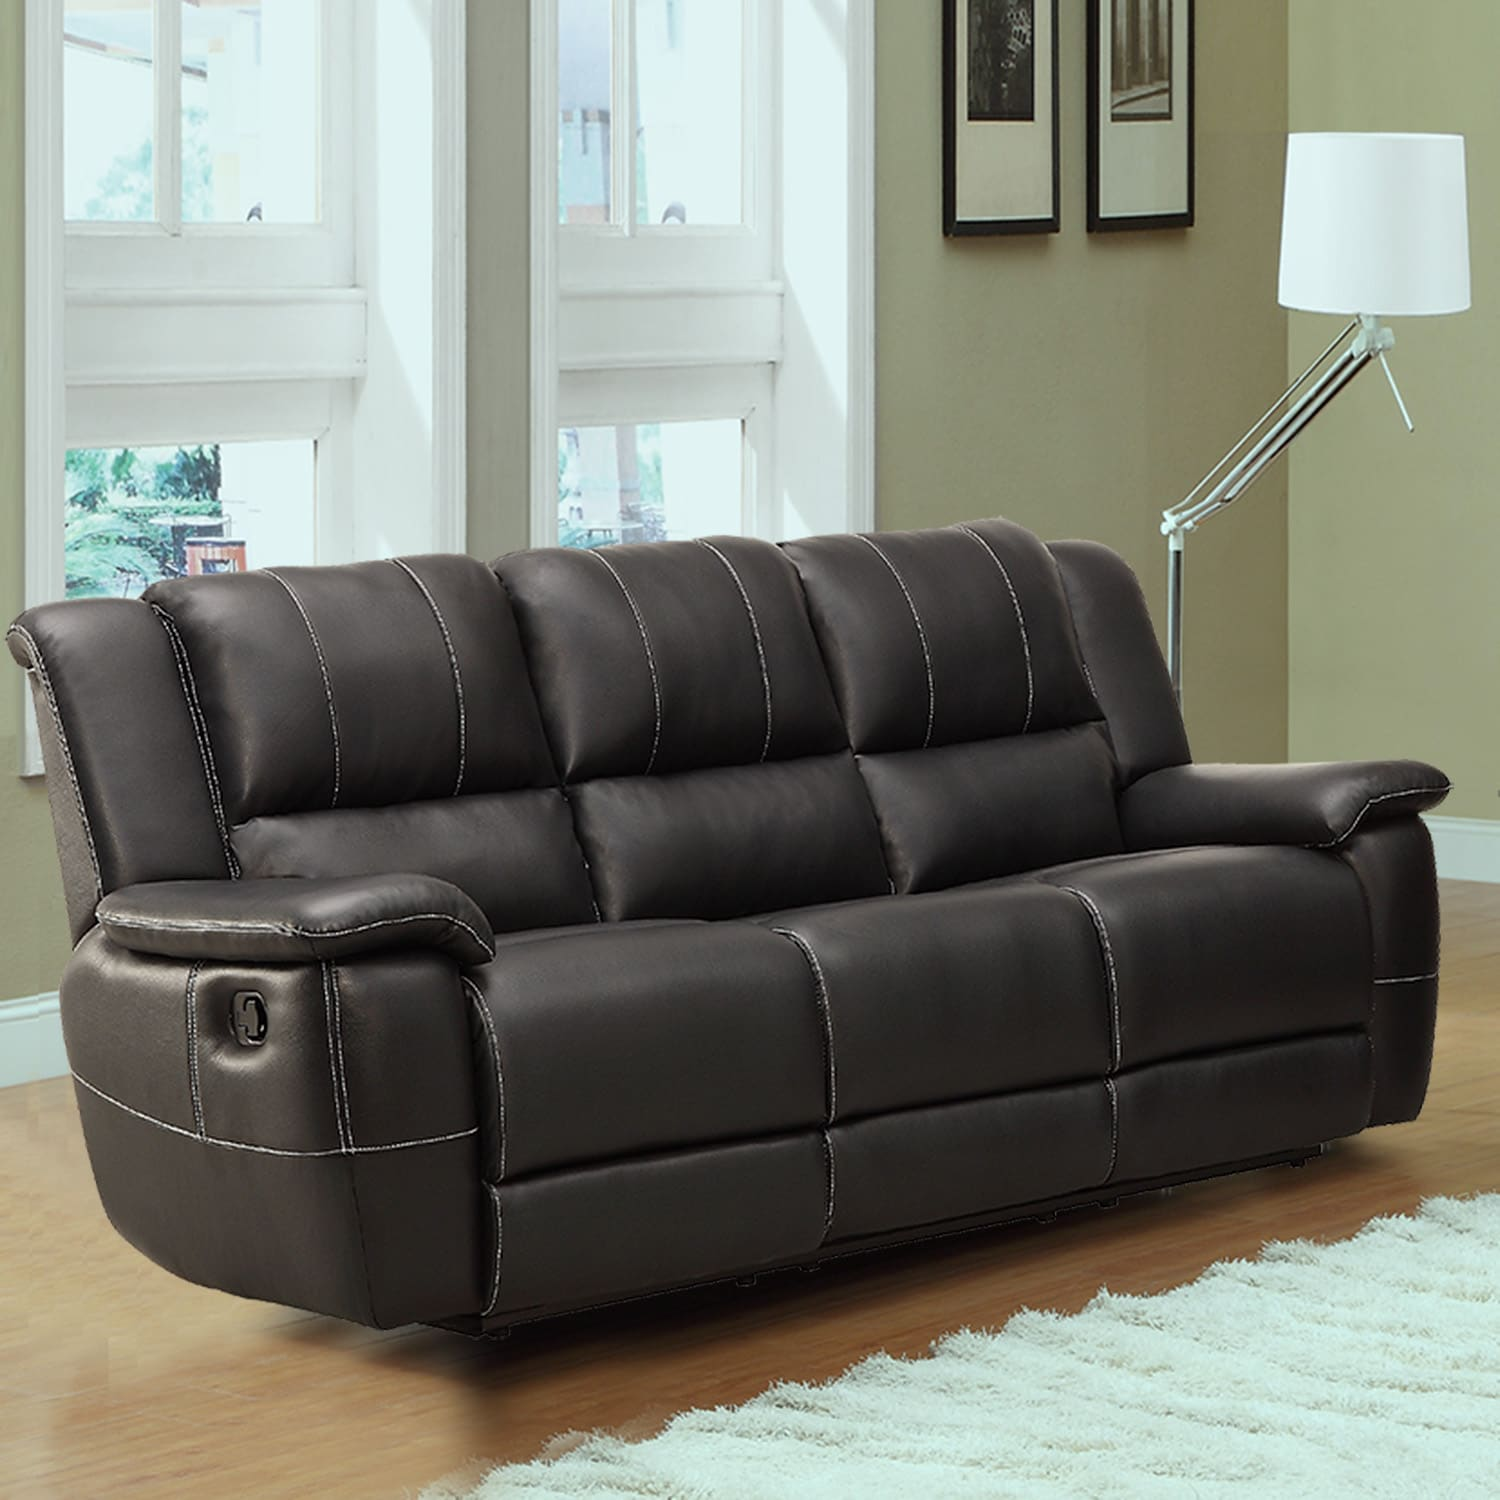 TRIBECCA HOME Griffin Black Bonded Leather Oversized Double Recliner Sofa at Sears.com